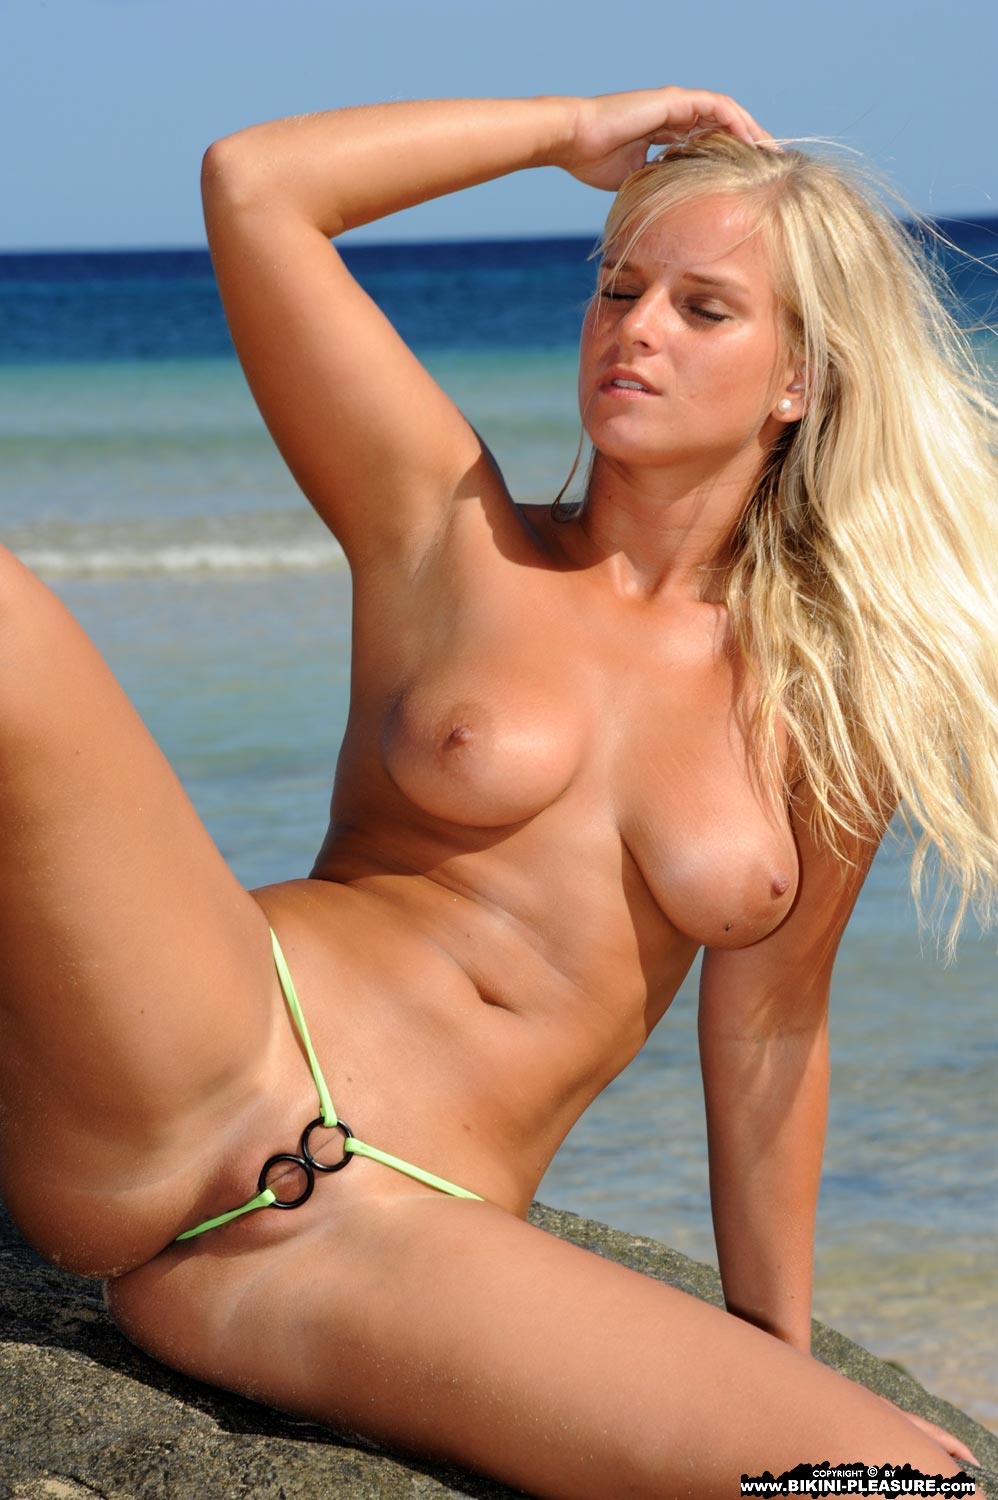 Bikini gallery hot model